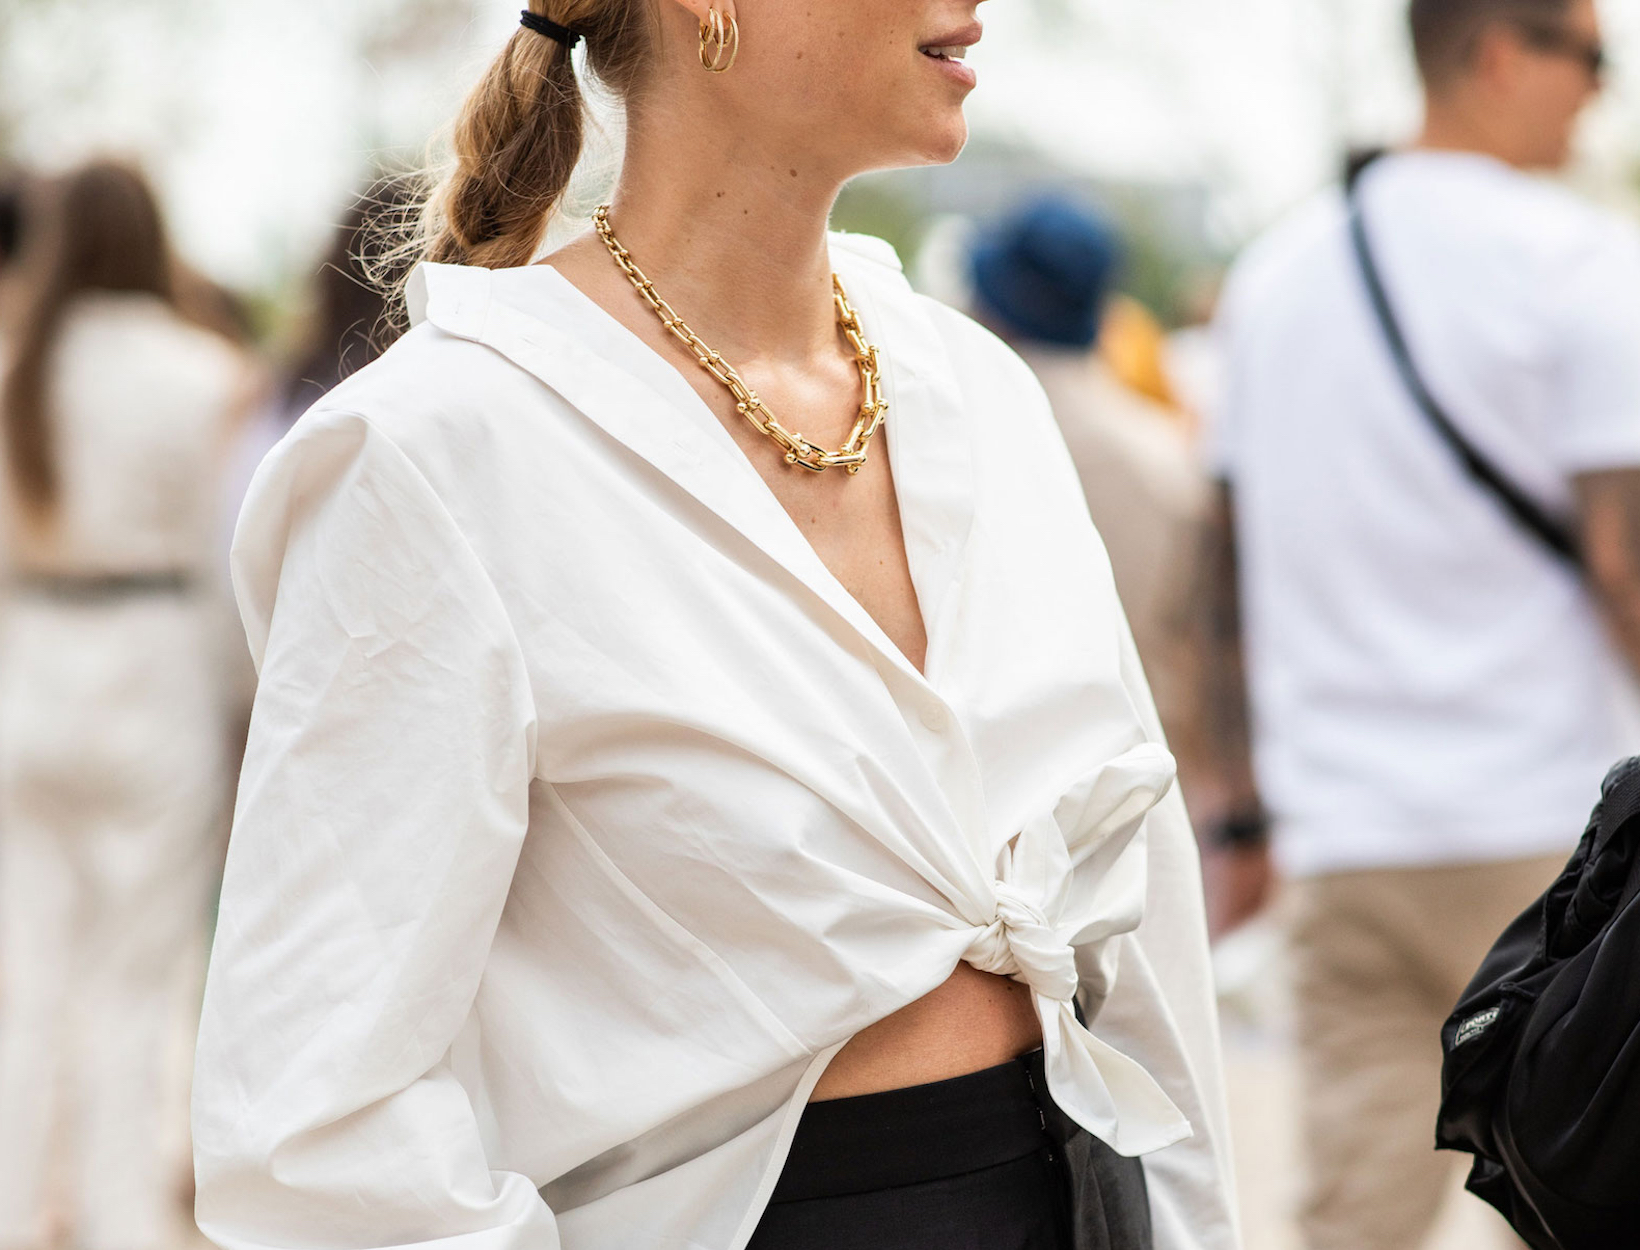 17a7efde86777 5 New Ways to Wear Gold Jewelry - Summer Jewelry Trends 2019 | Goop